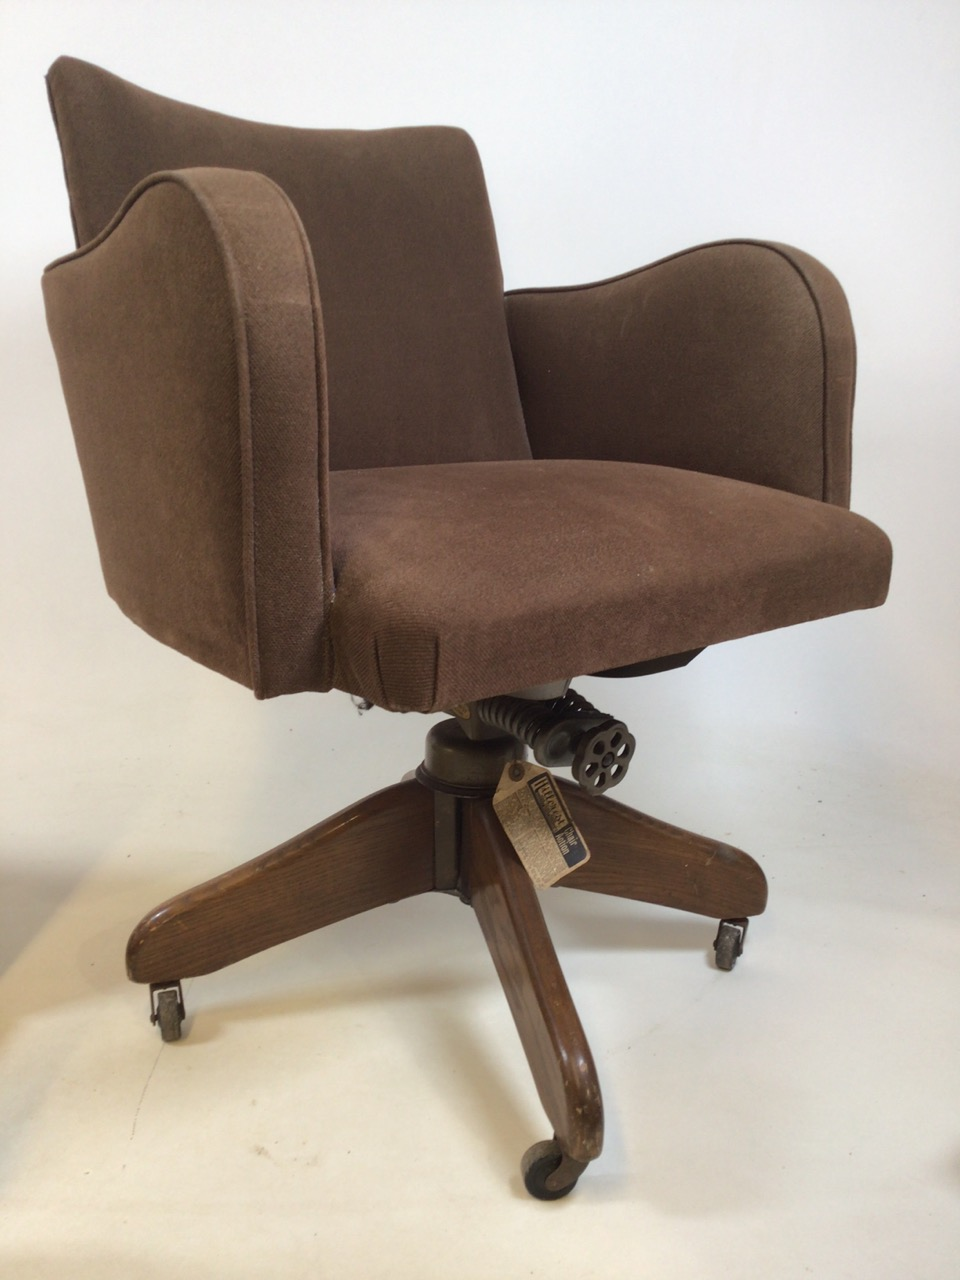 A Hillcrest mid century swivel office chair with Hillcrest label to metal base on oak stand with